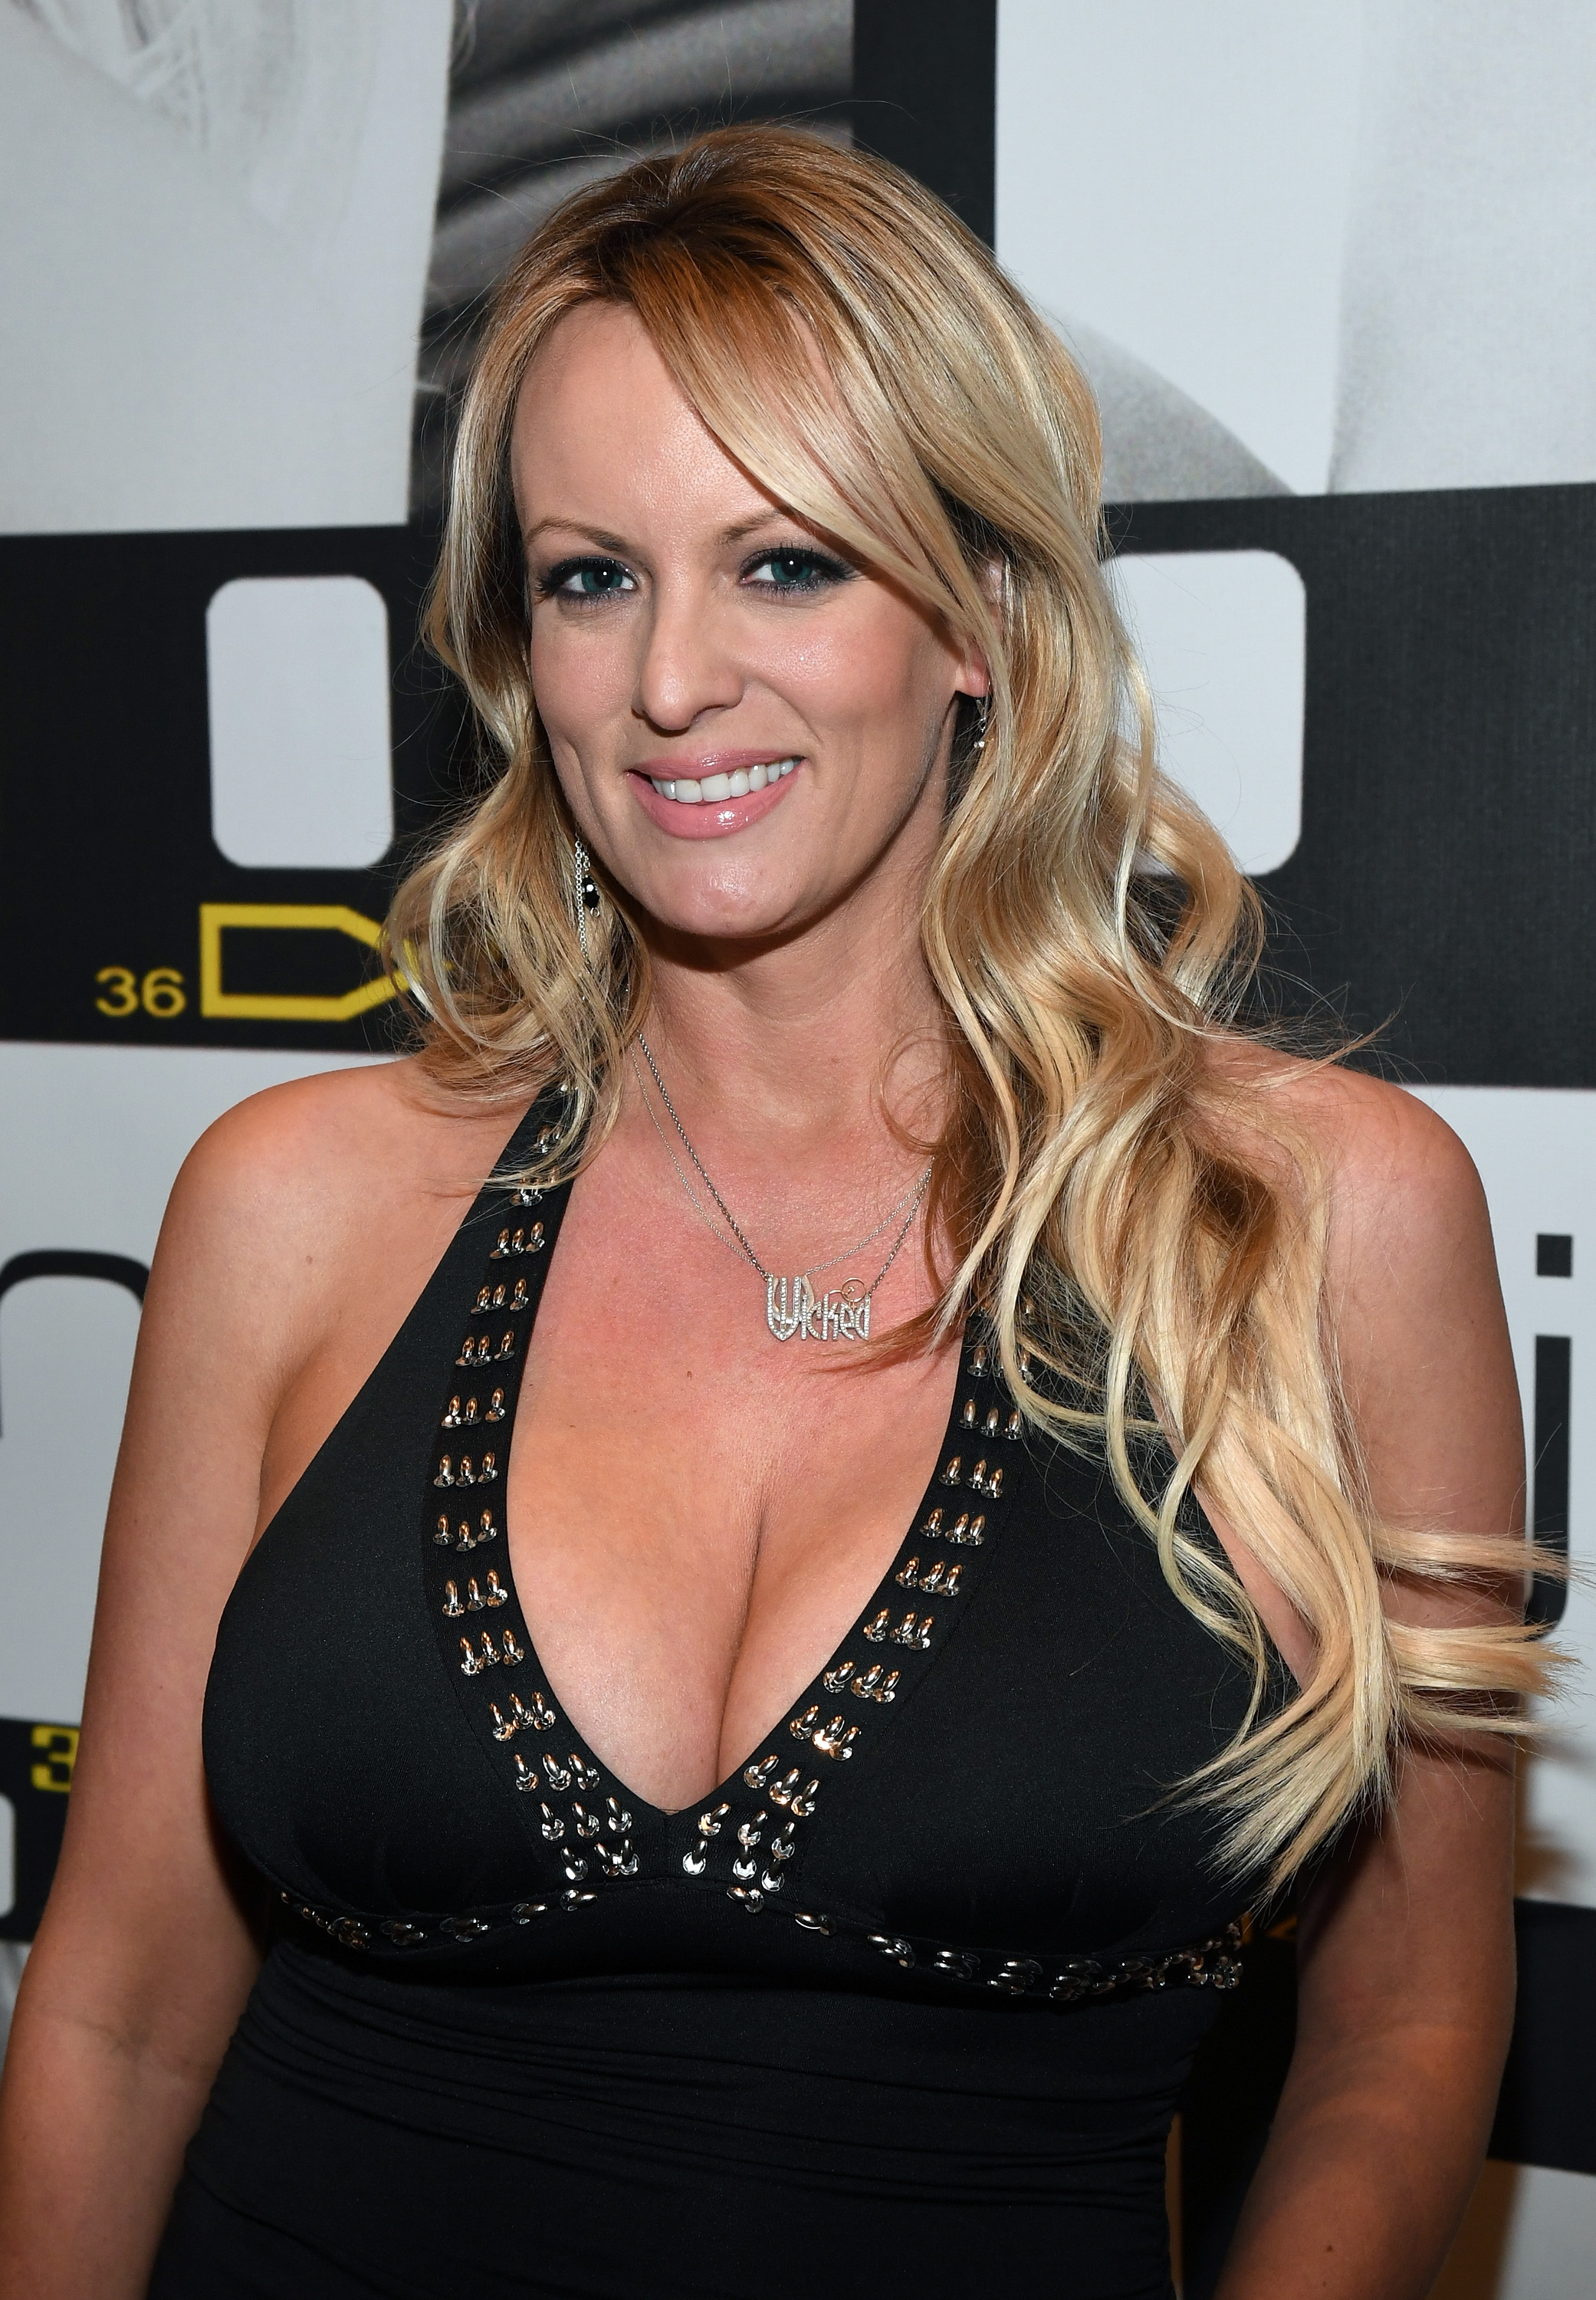 Stormy Daniels hot photos pictures